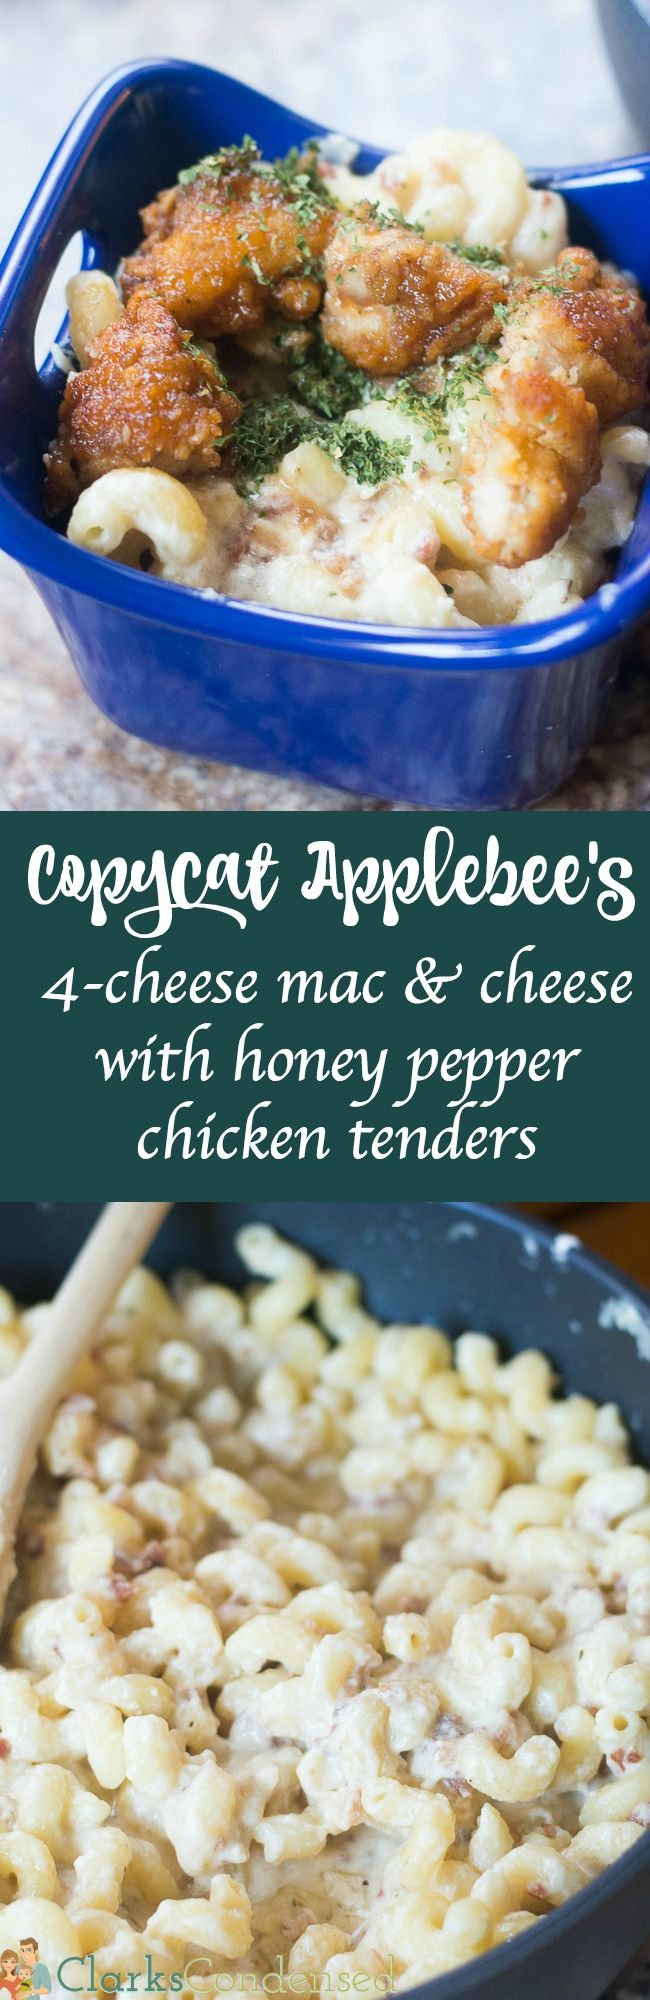 This copycat Applebee's 4 cheese mac & cheese with honey pepper chicken tenders is simple and delicious - it's great for children and adults. Even those who don't like mac and cheese love it!